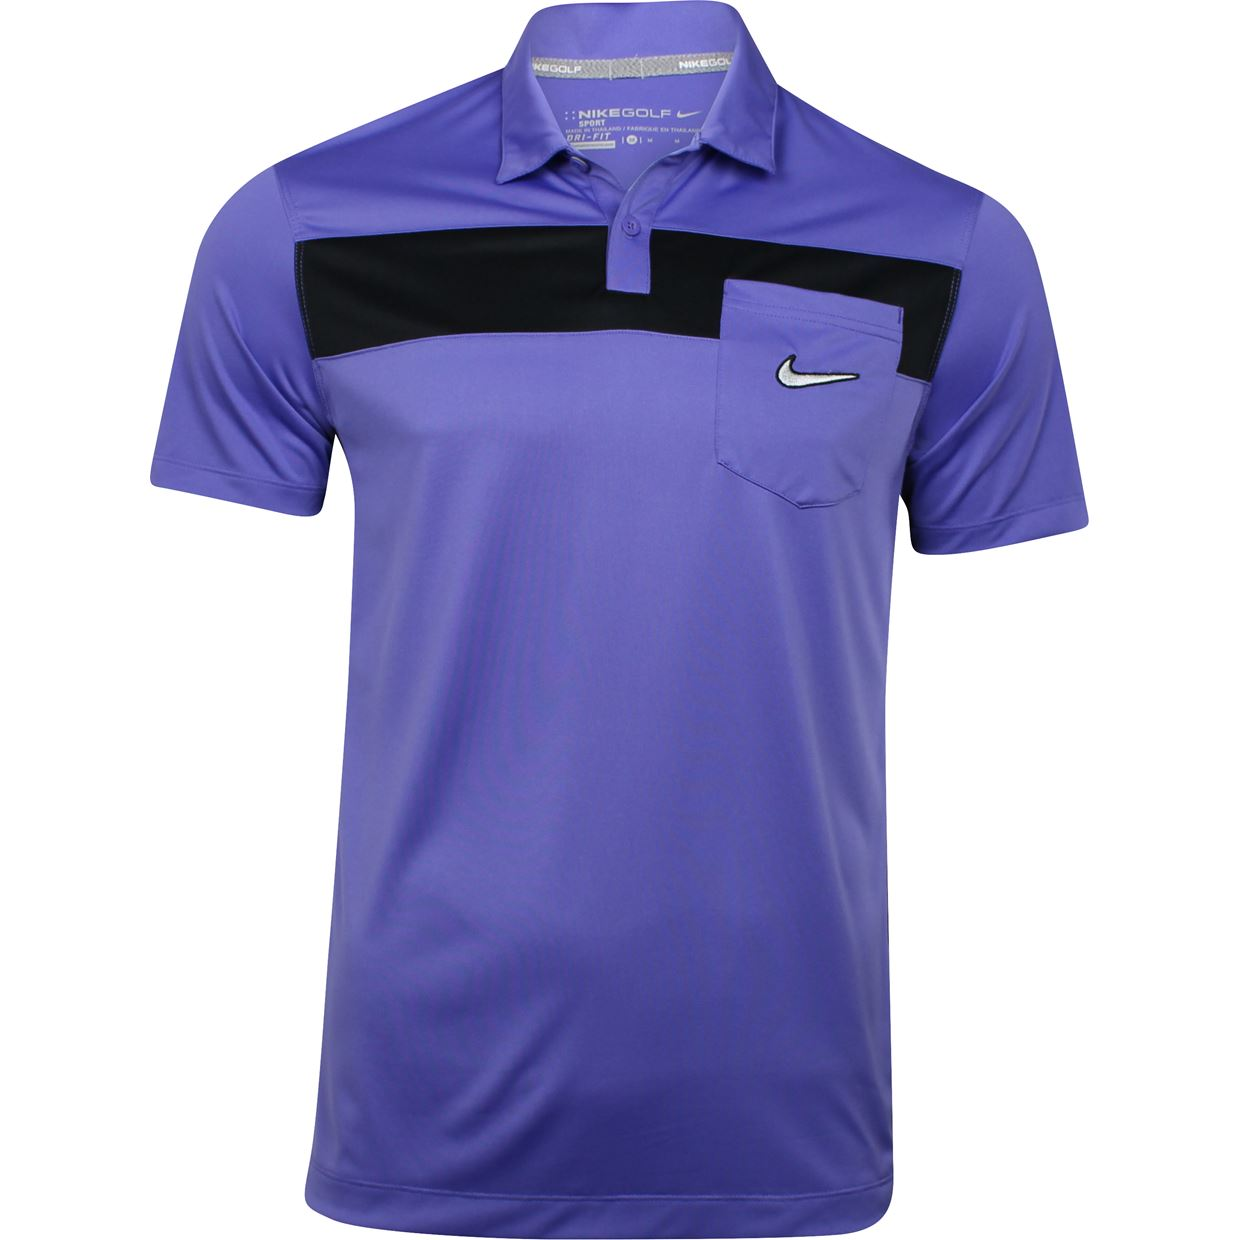 Dri fit polo shirts with pocket for Polo t shirts with pocket online